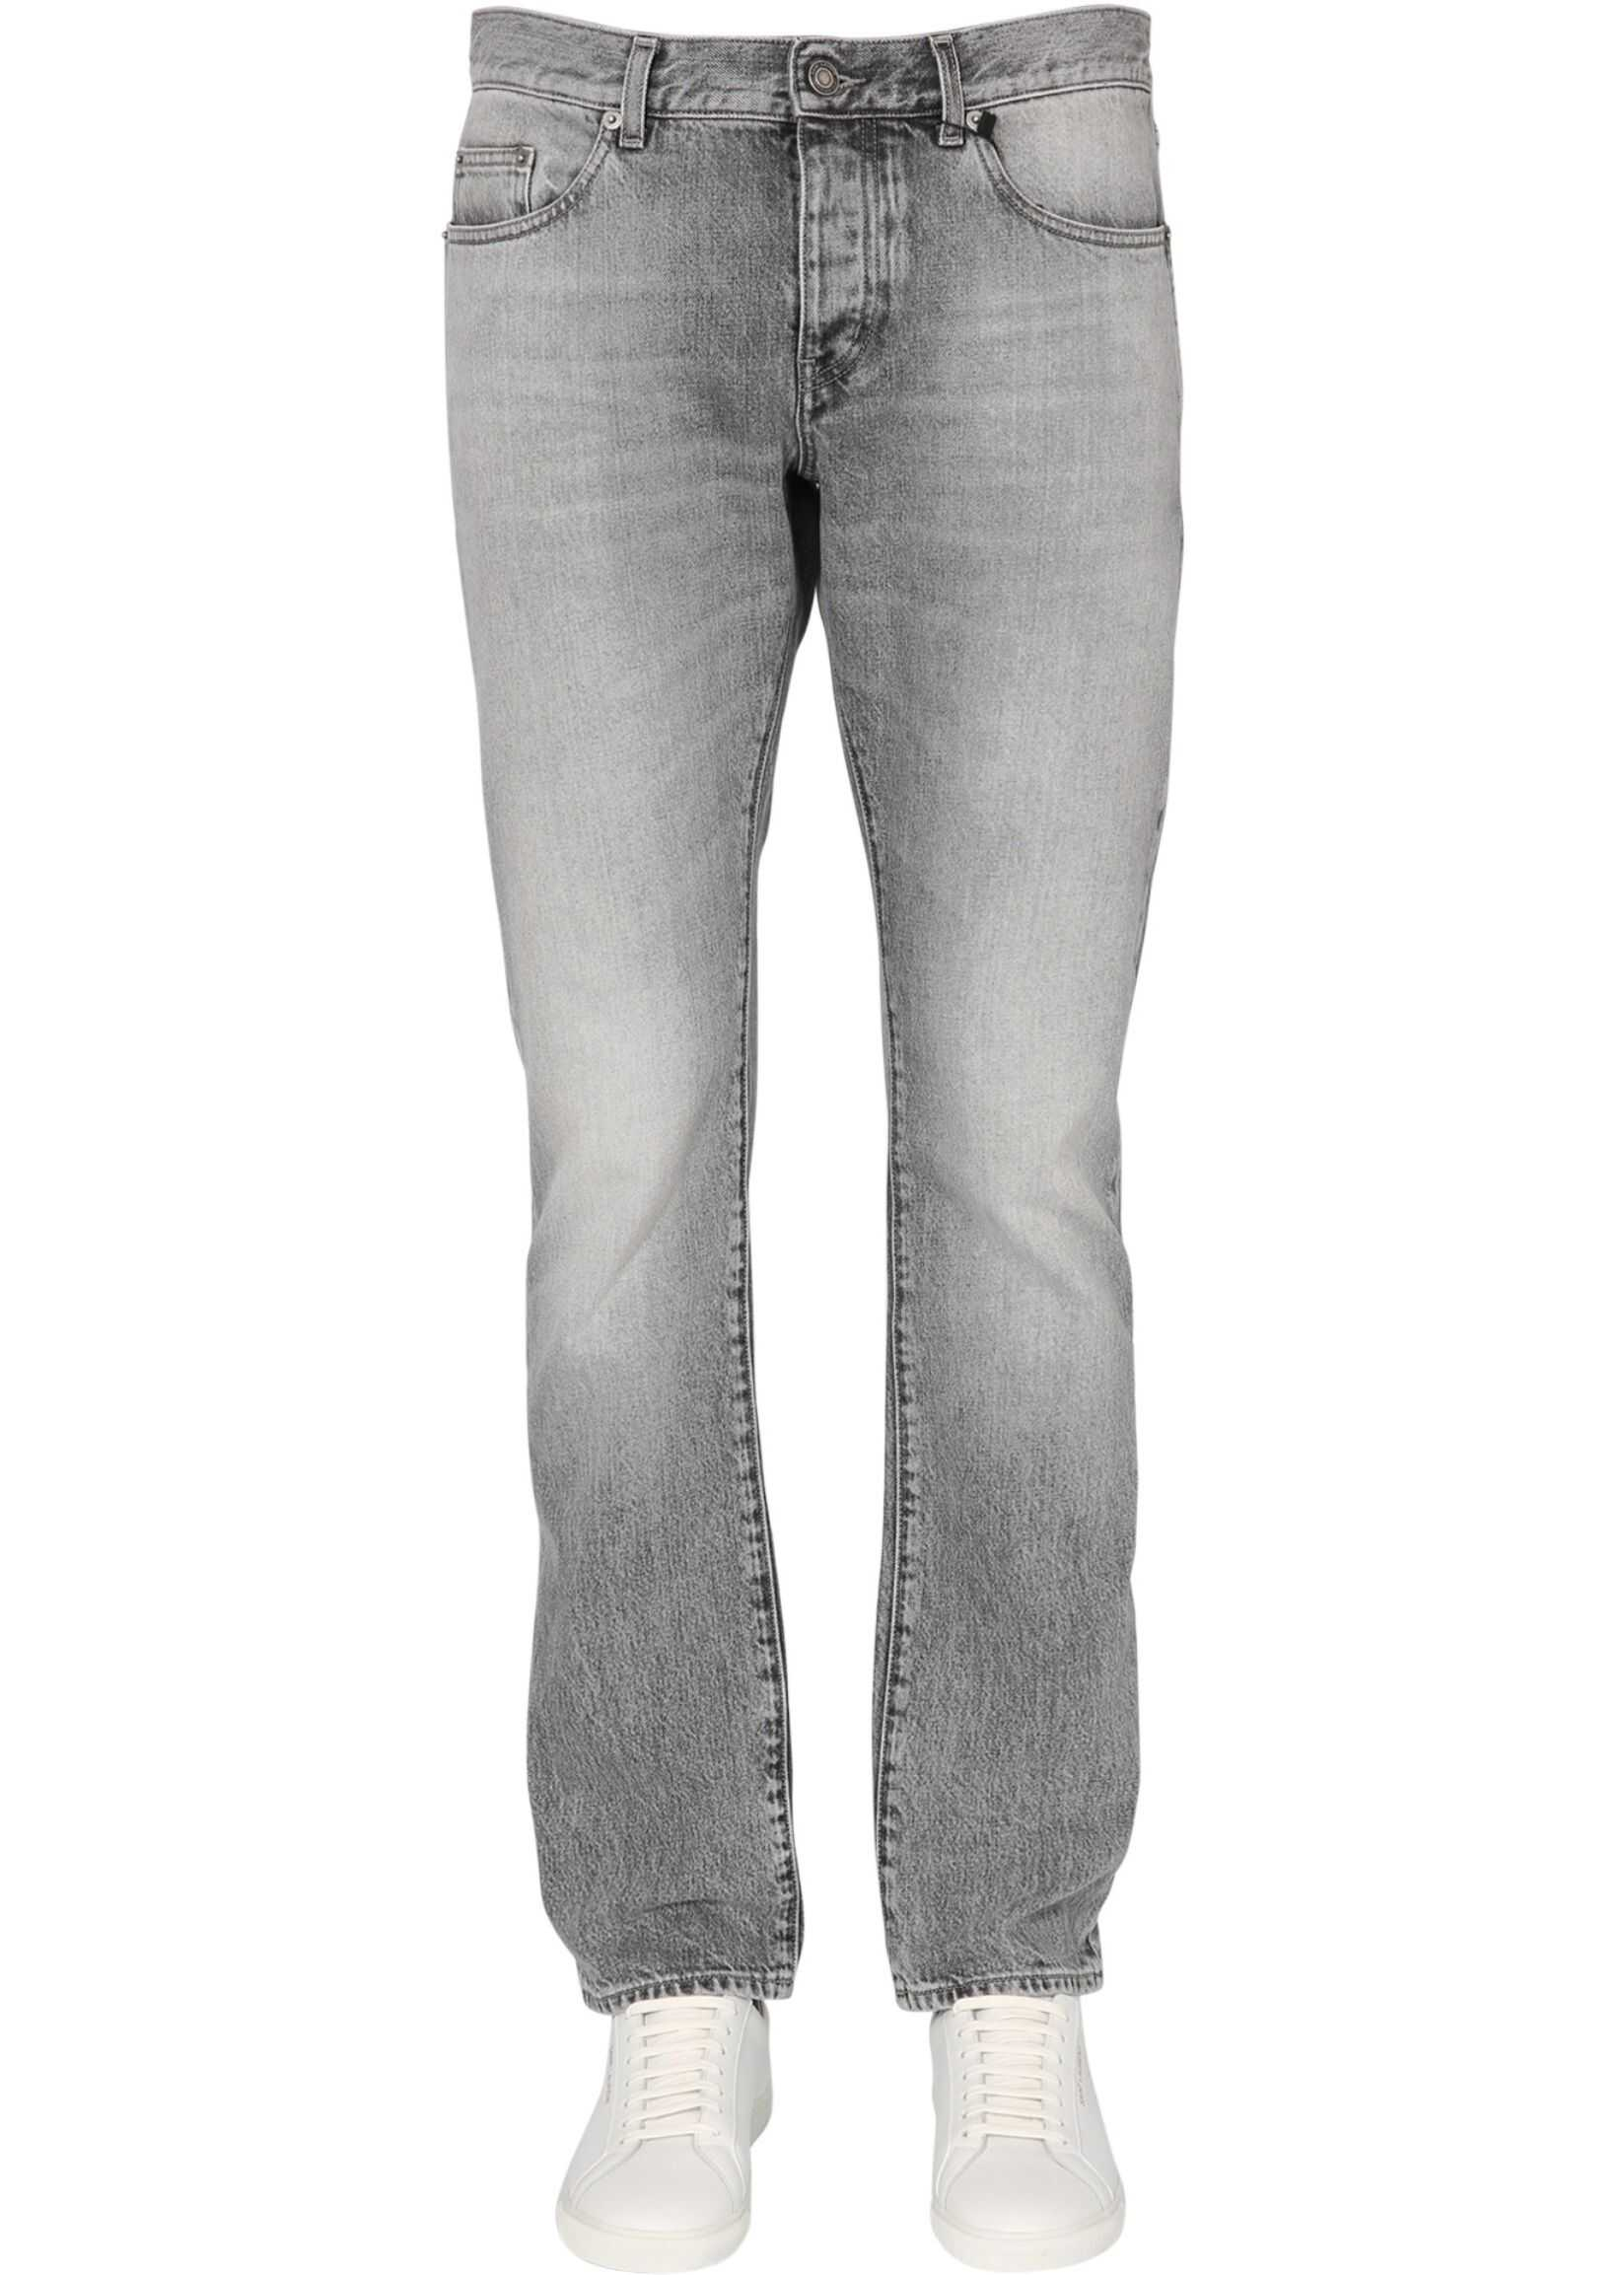 Saint Laurent Slim Fit Jeans GREY imagine